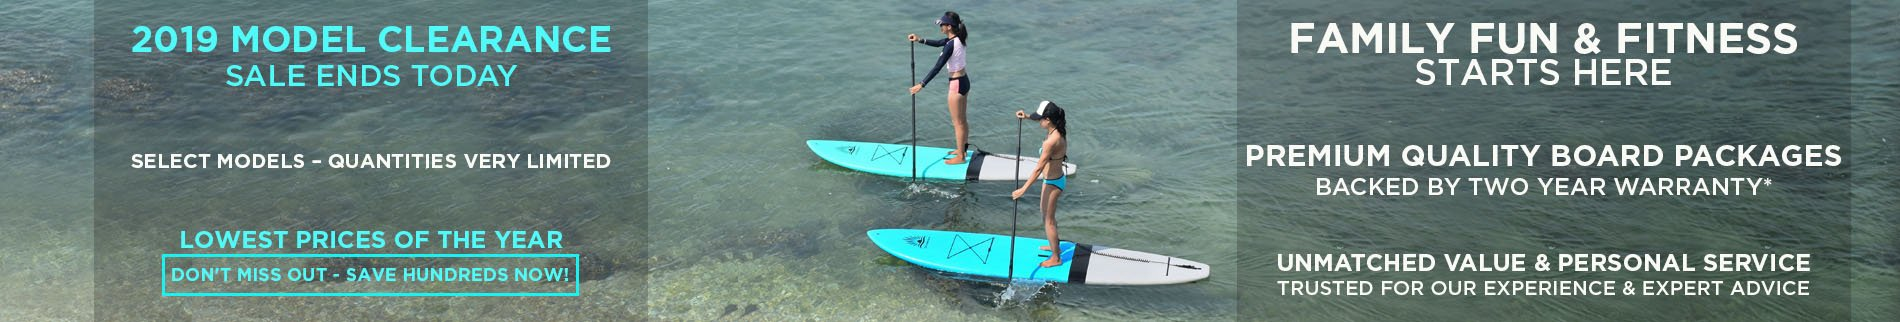 Women's Stand Up Paddle Board   Summer Clearance Sale